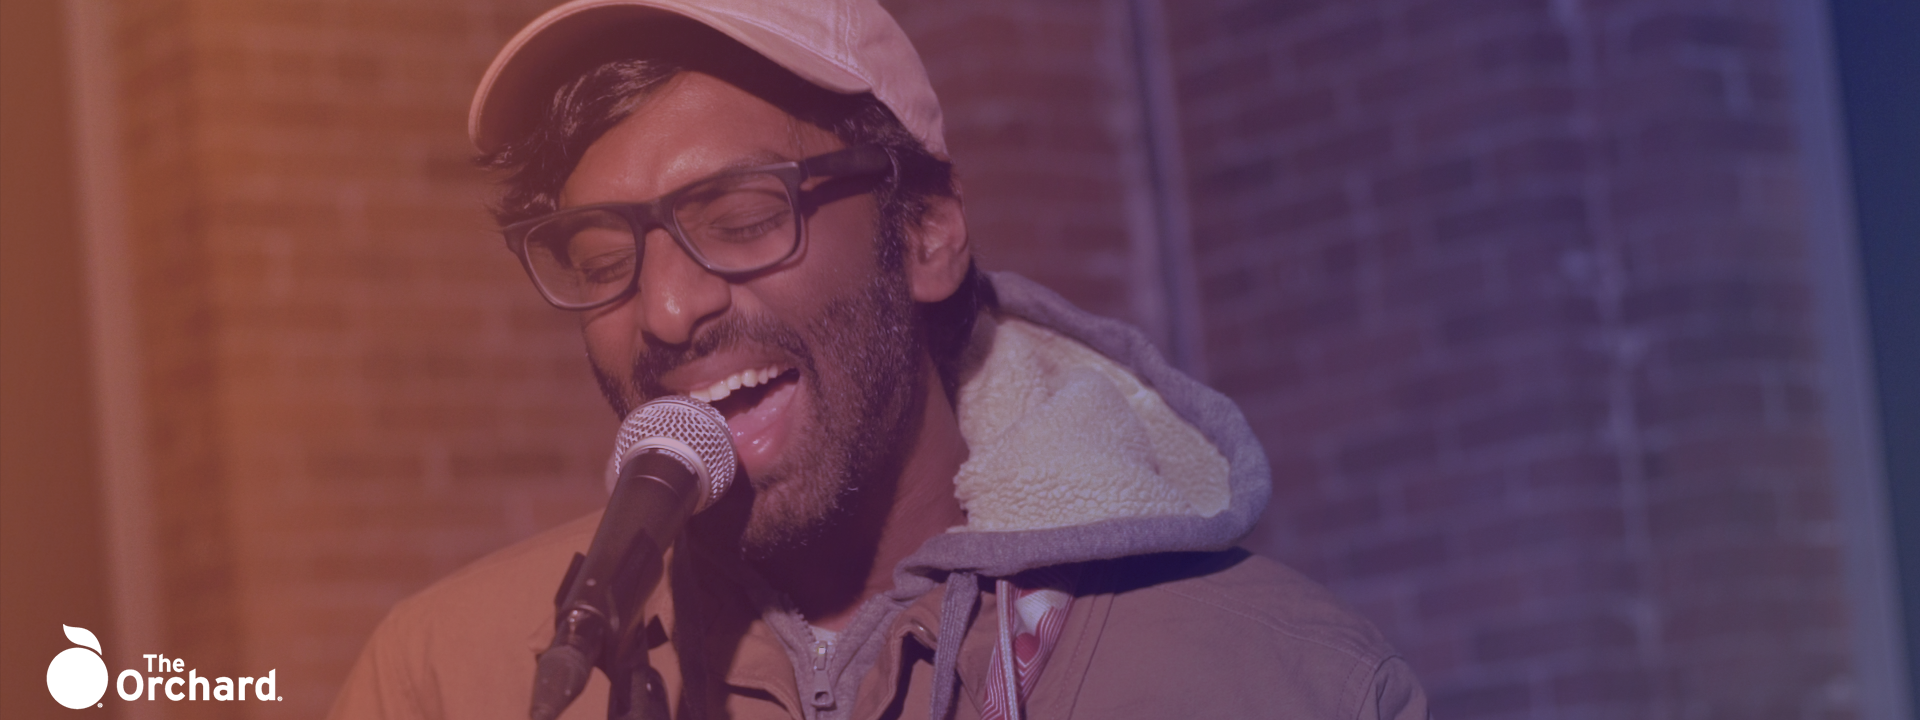 The Orchard Presents: Abhi the Nomad